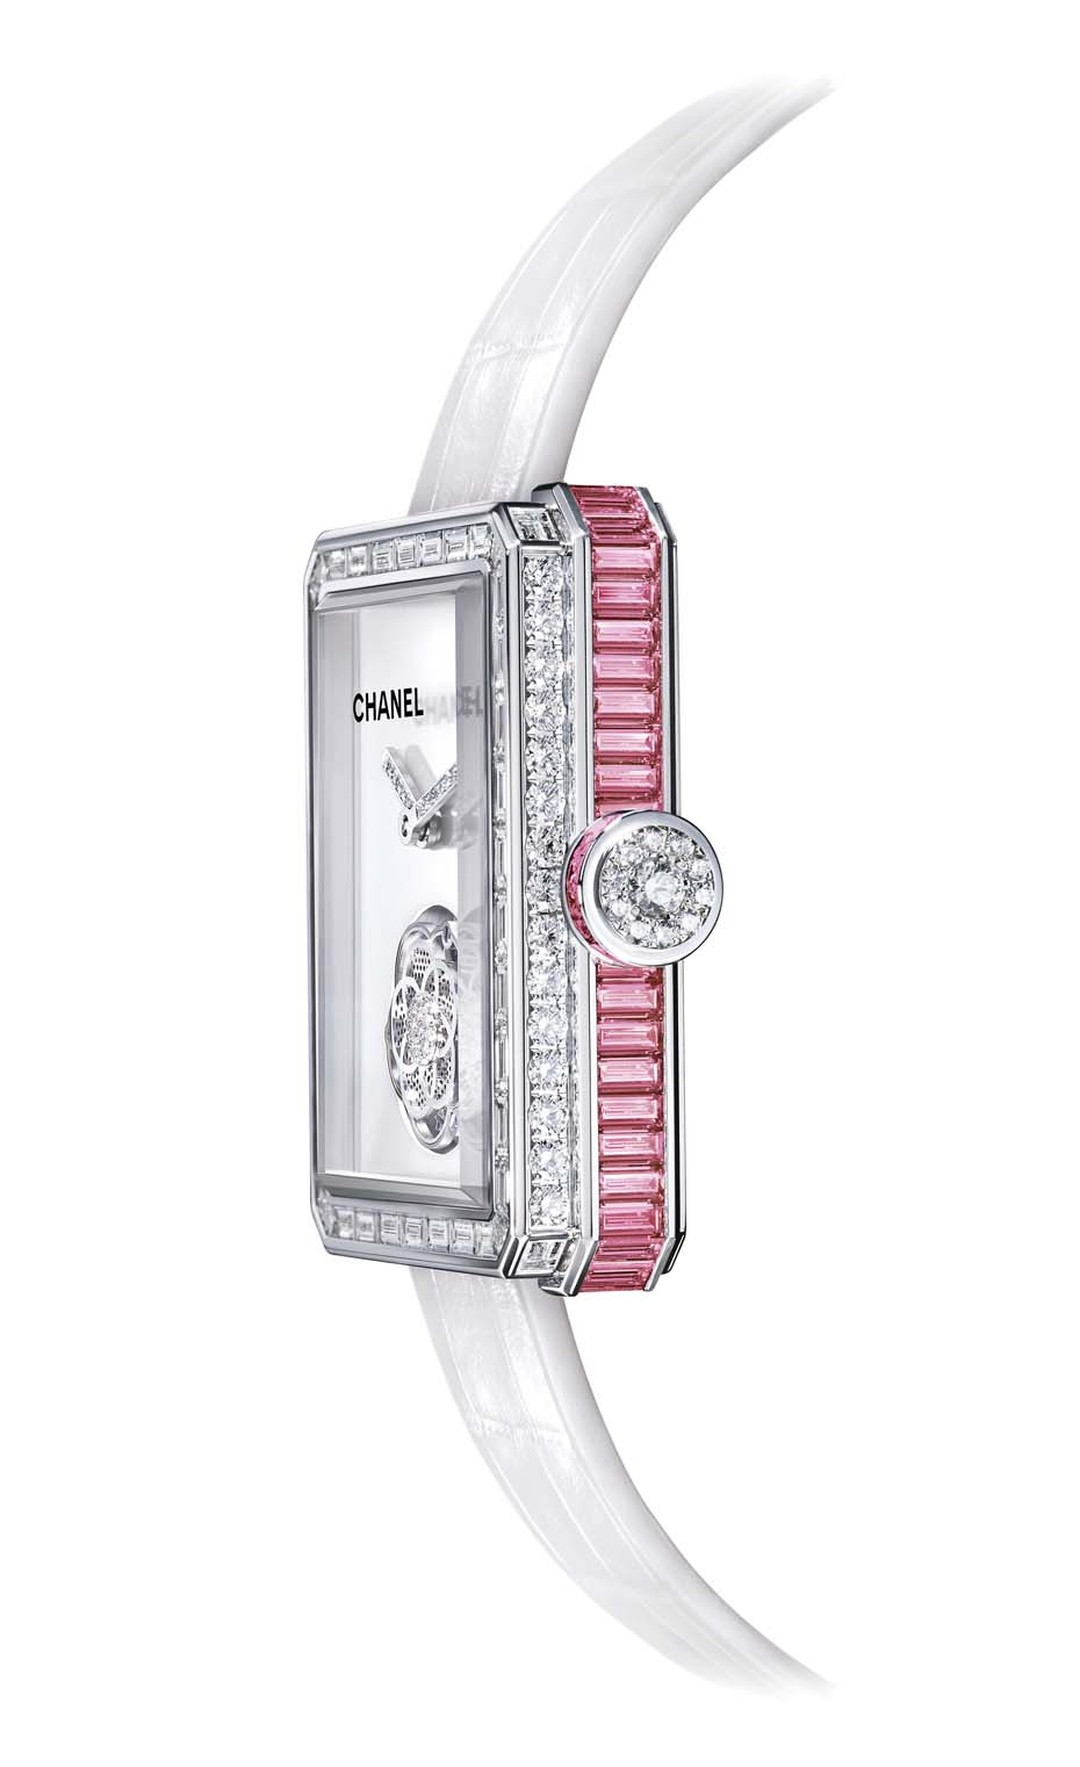 The shape of Chanel's Première collection of watches is inspired by the octagonal geometry of Place Vendôme and echoed in the N°5 perfume bottle stopper